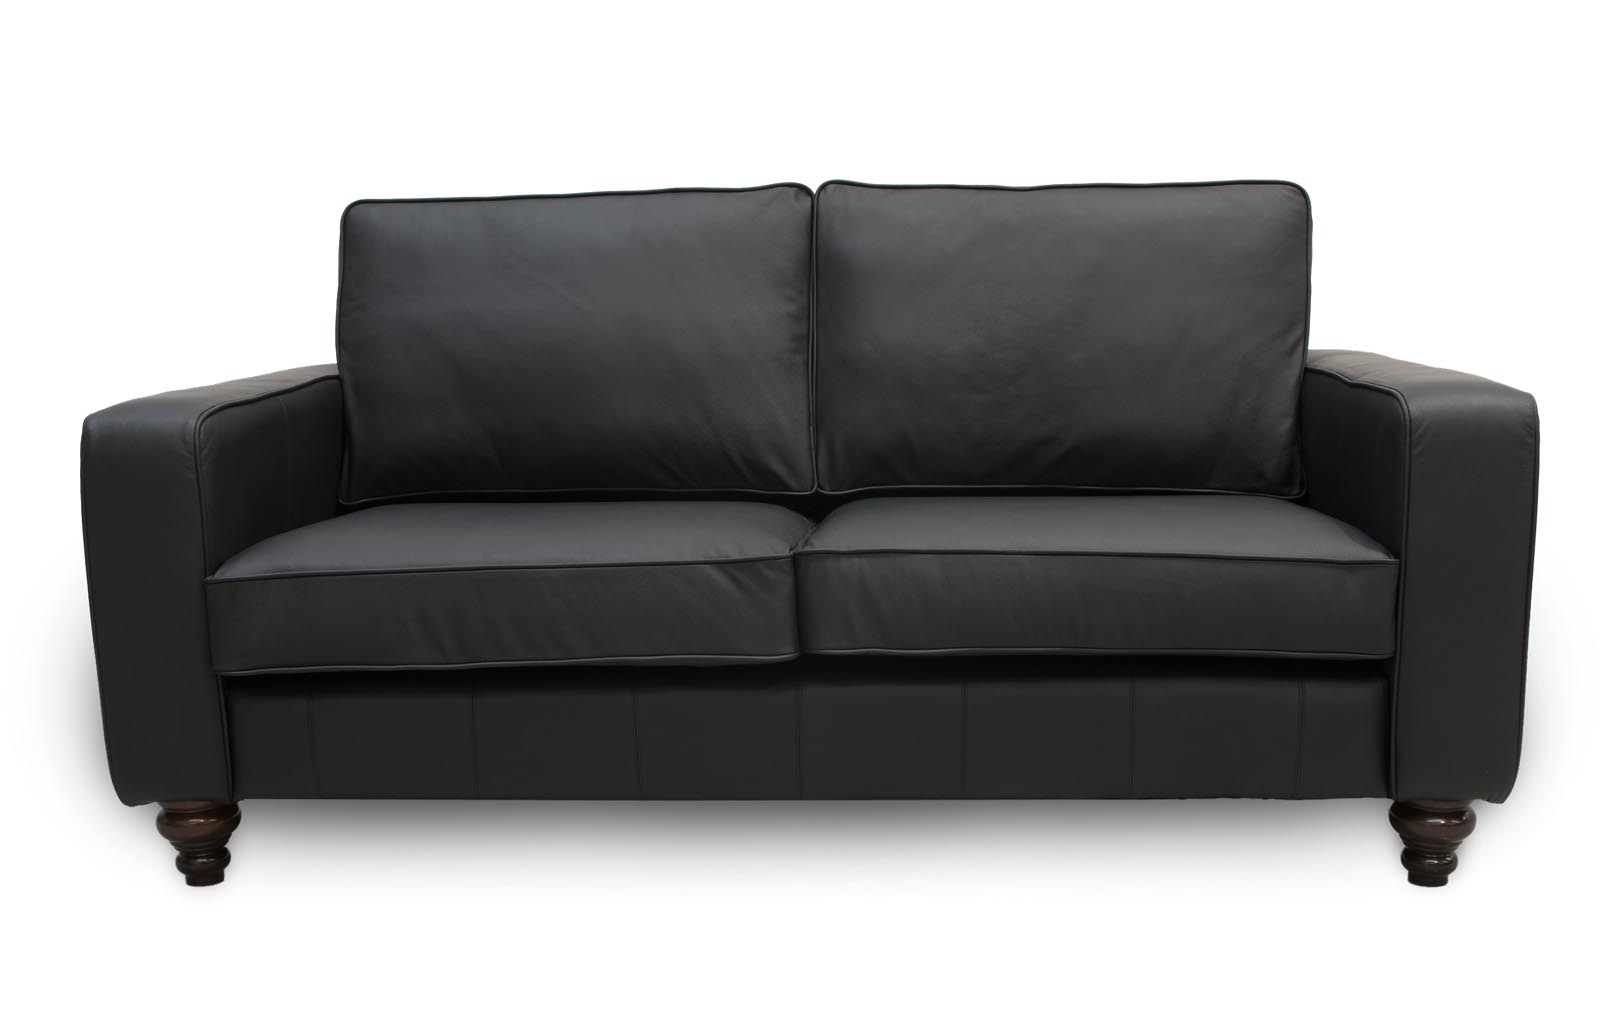 Cheap sofas londonderry - Contemporary sofas uk ...